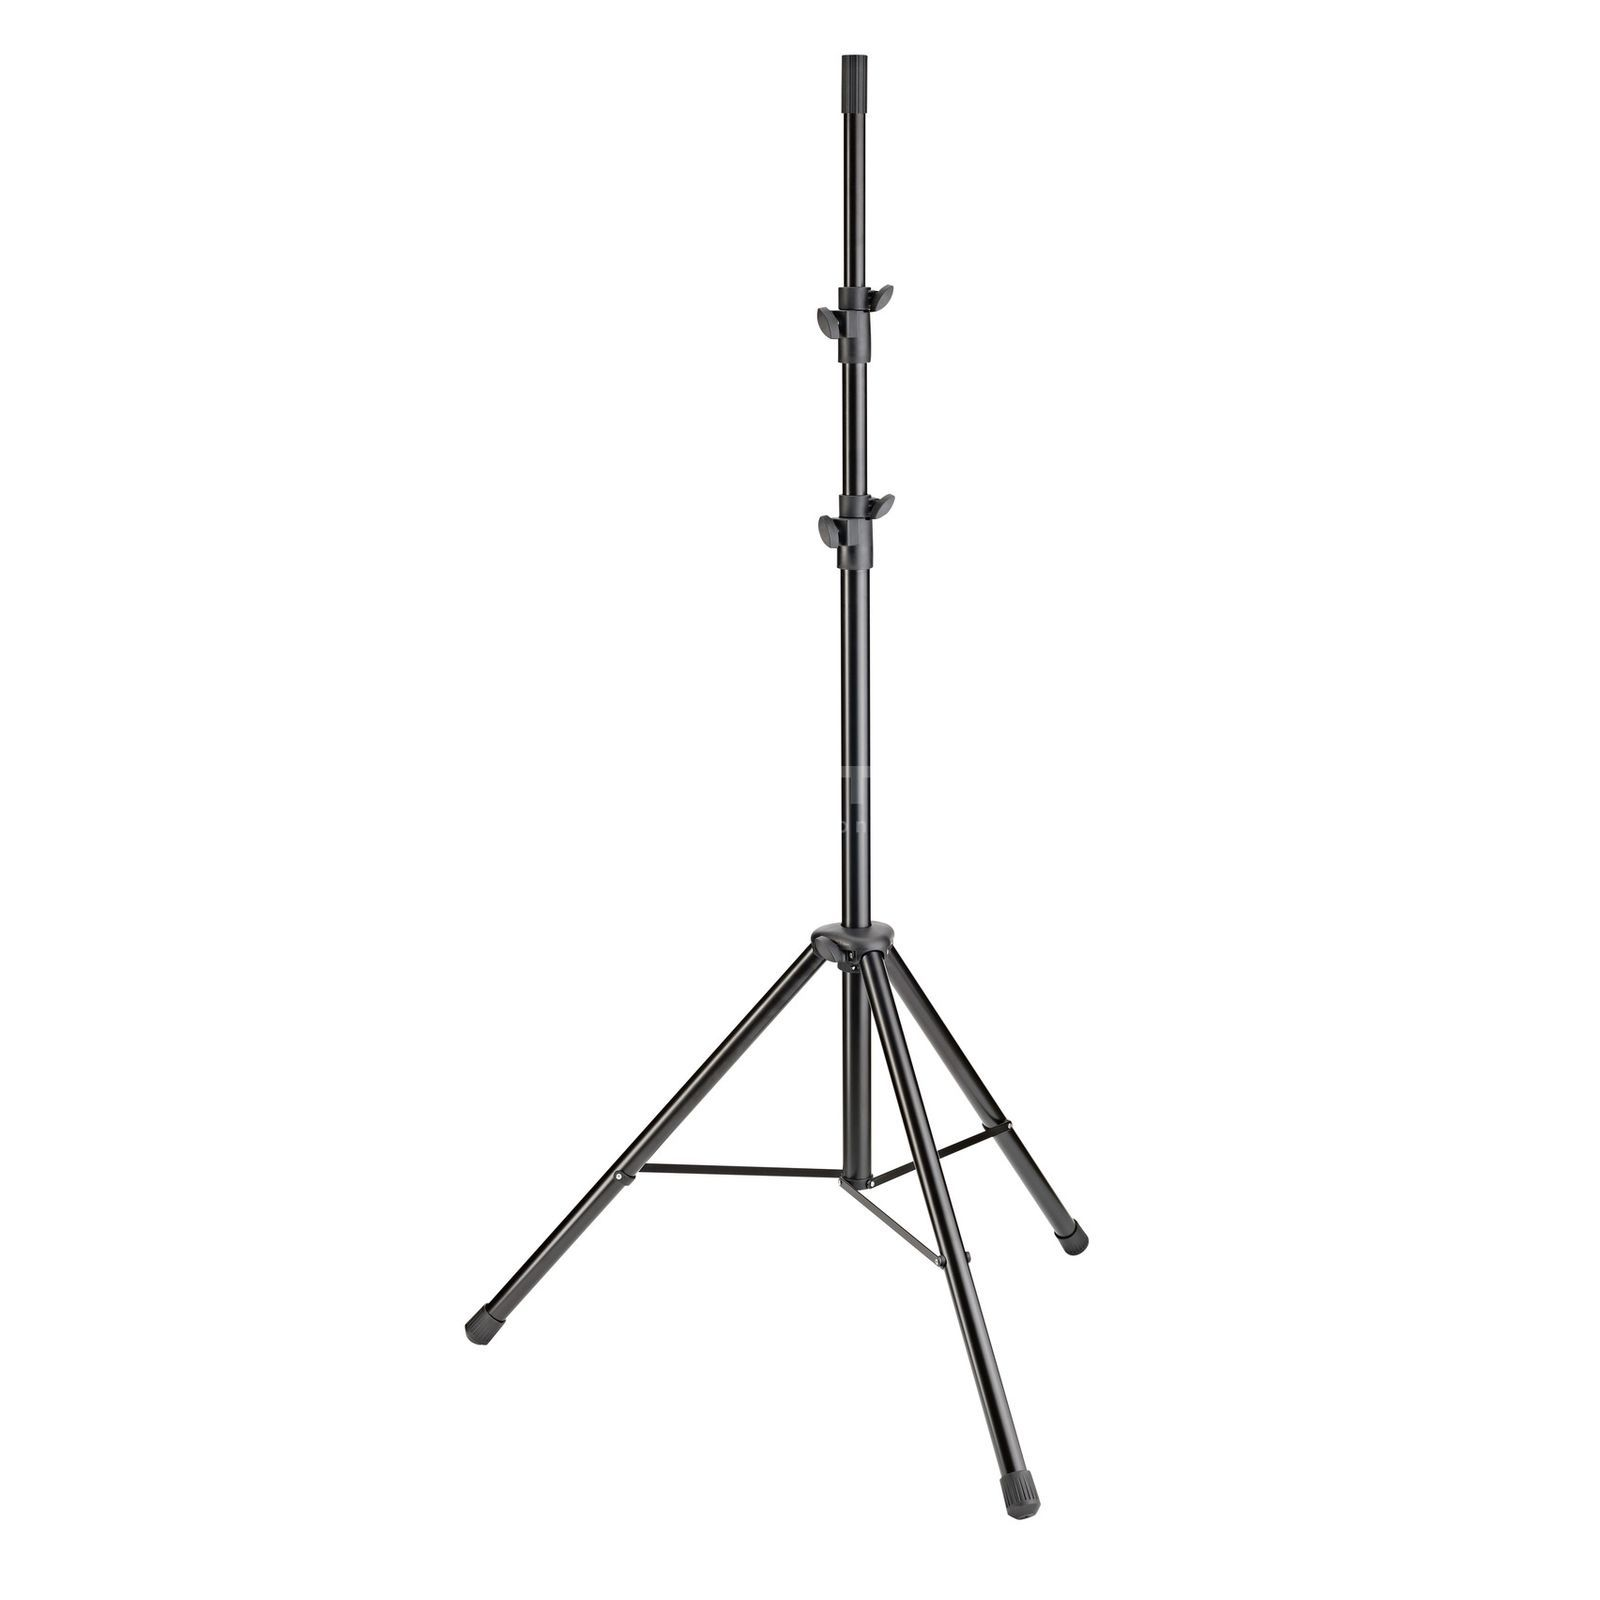 König & Meyer 24645 Lighting stand M10 black Product Image